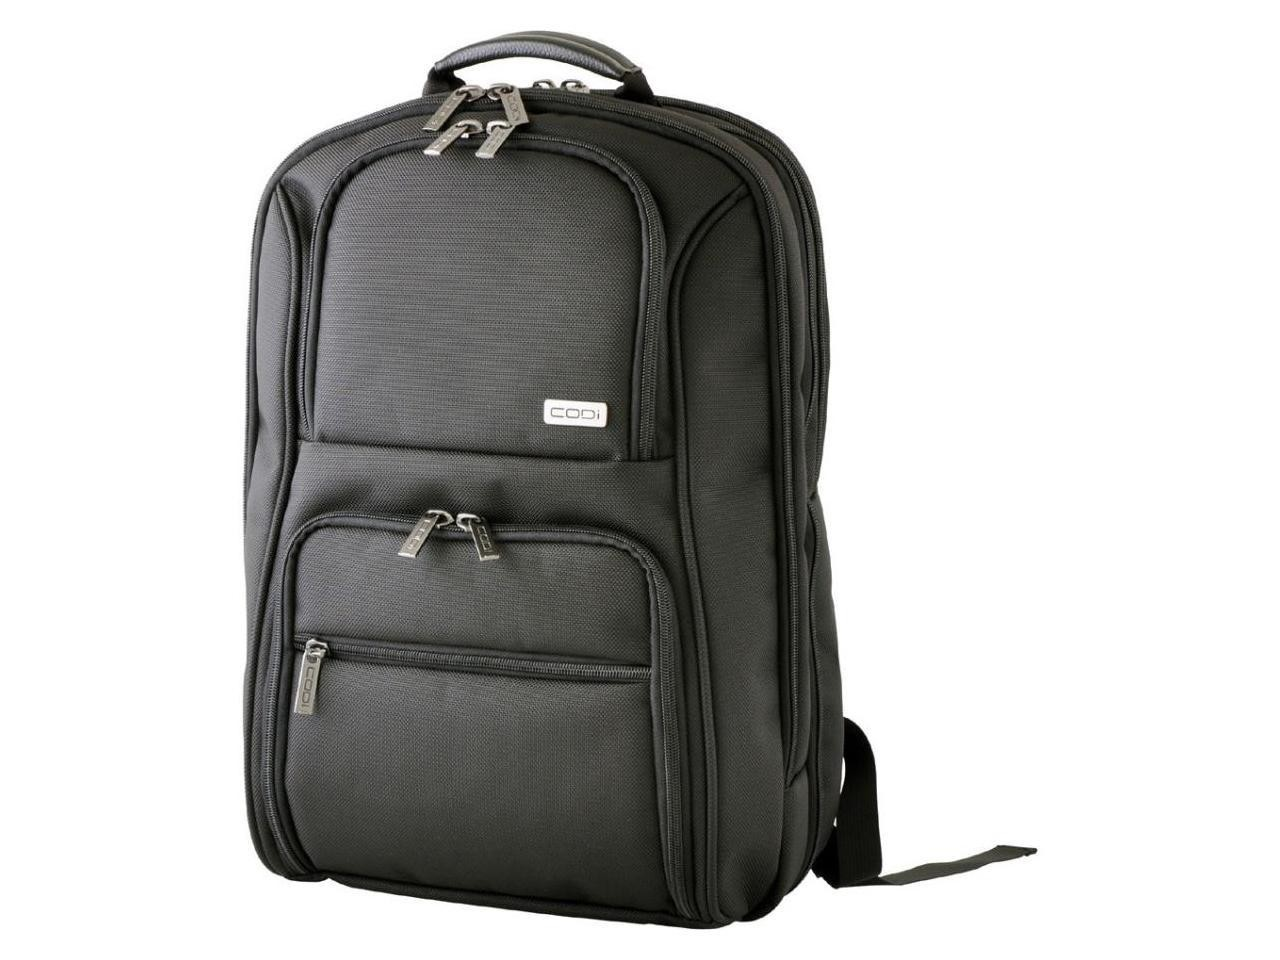 Codi C6070 CT3 Apex X2 17 Notebook Carrying BackPack C6070